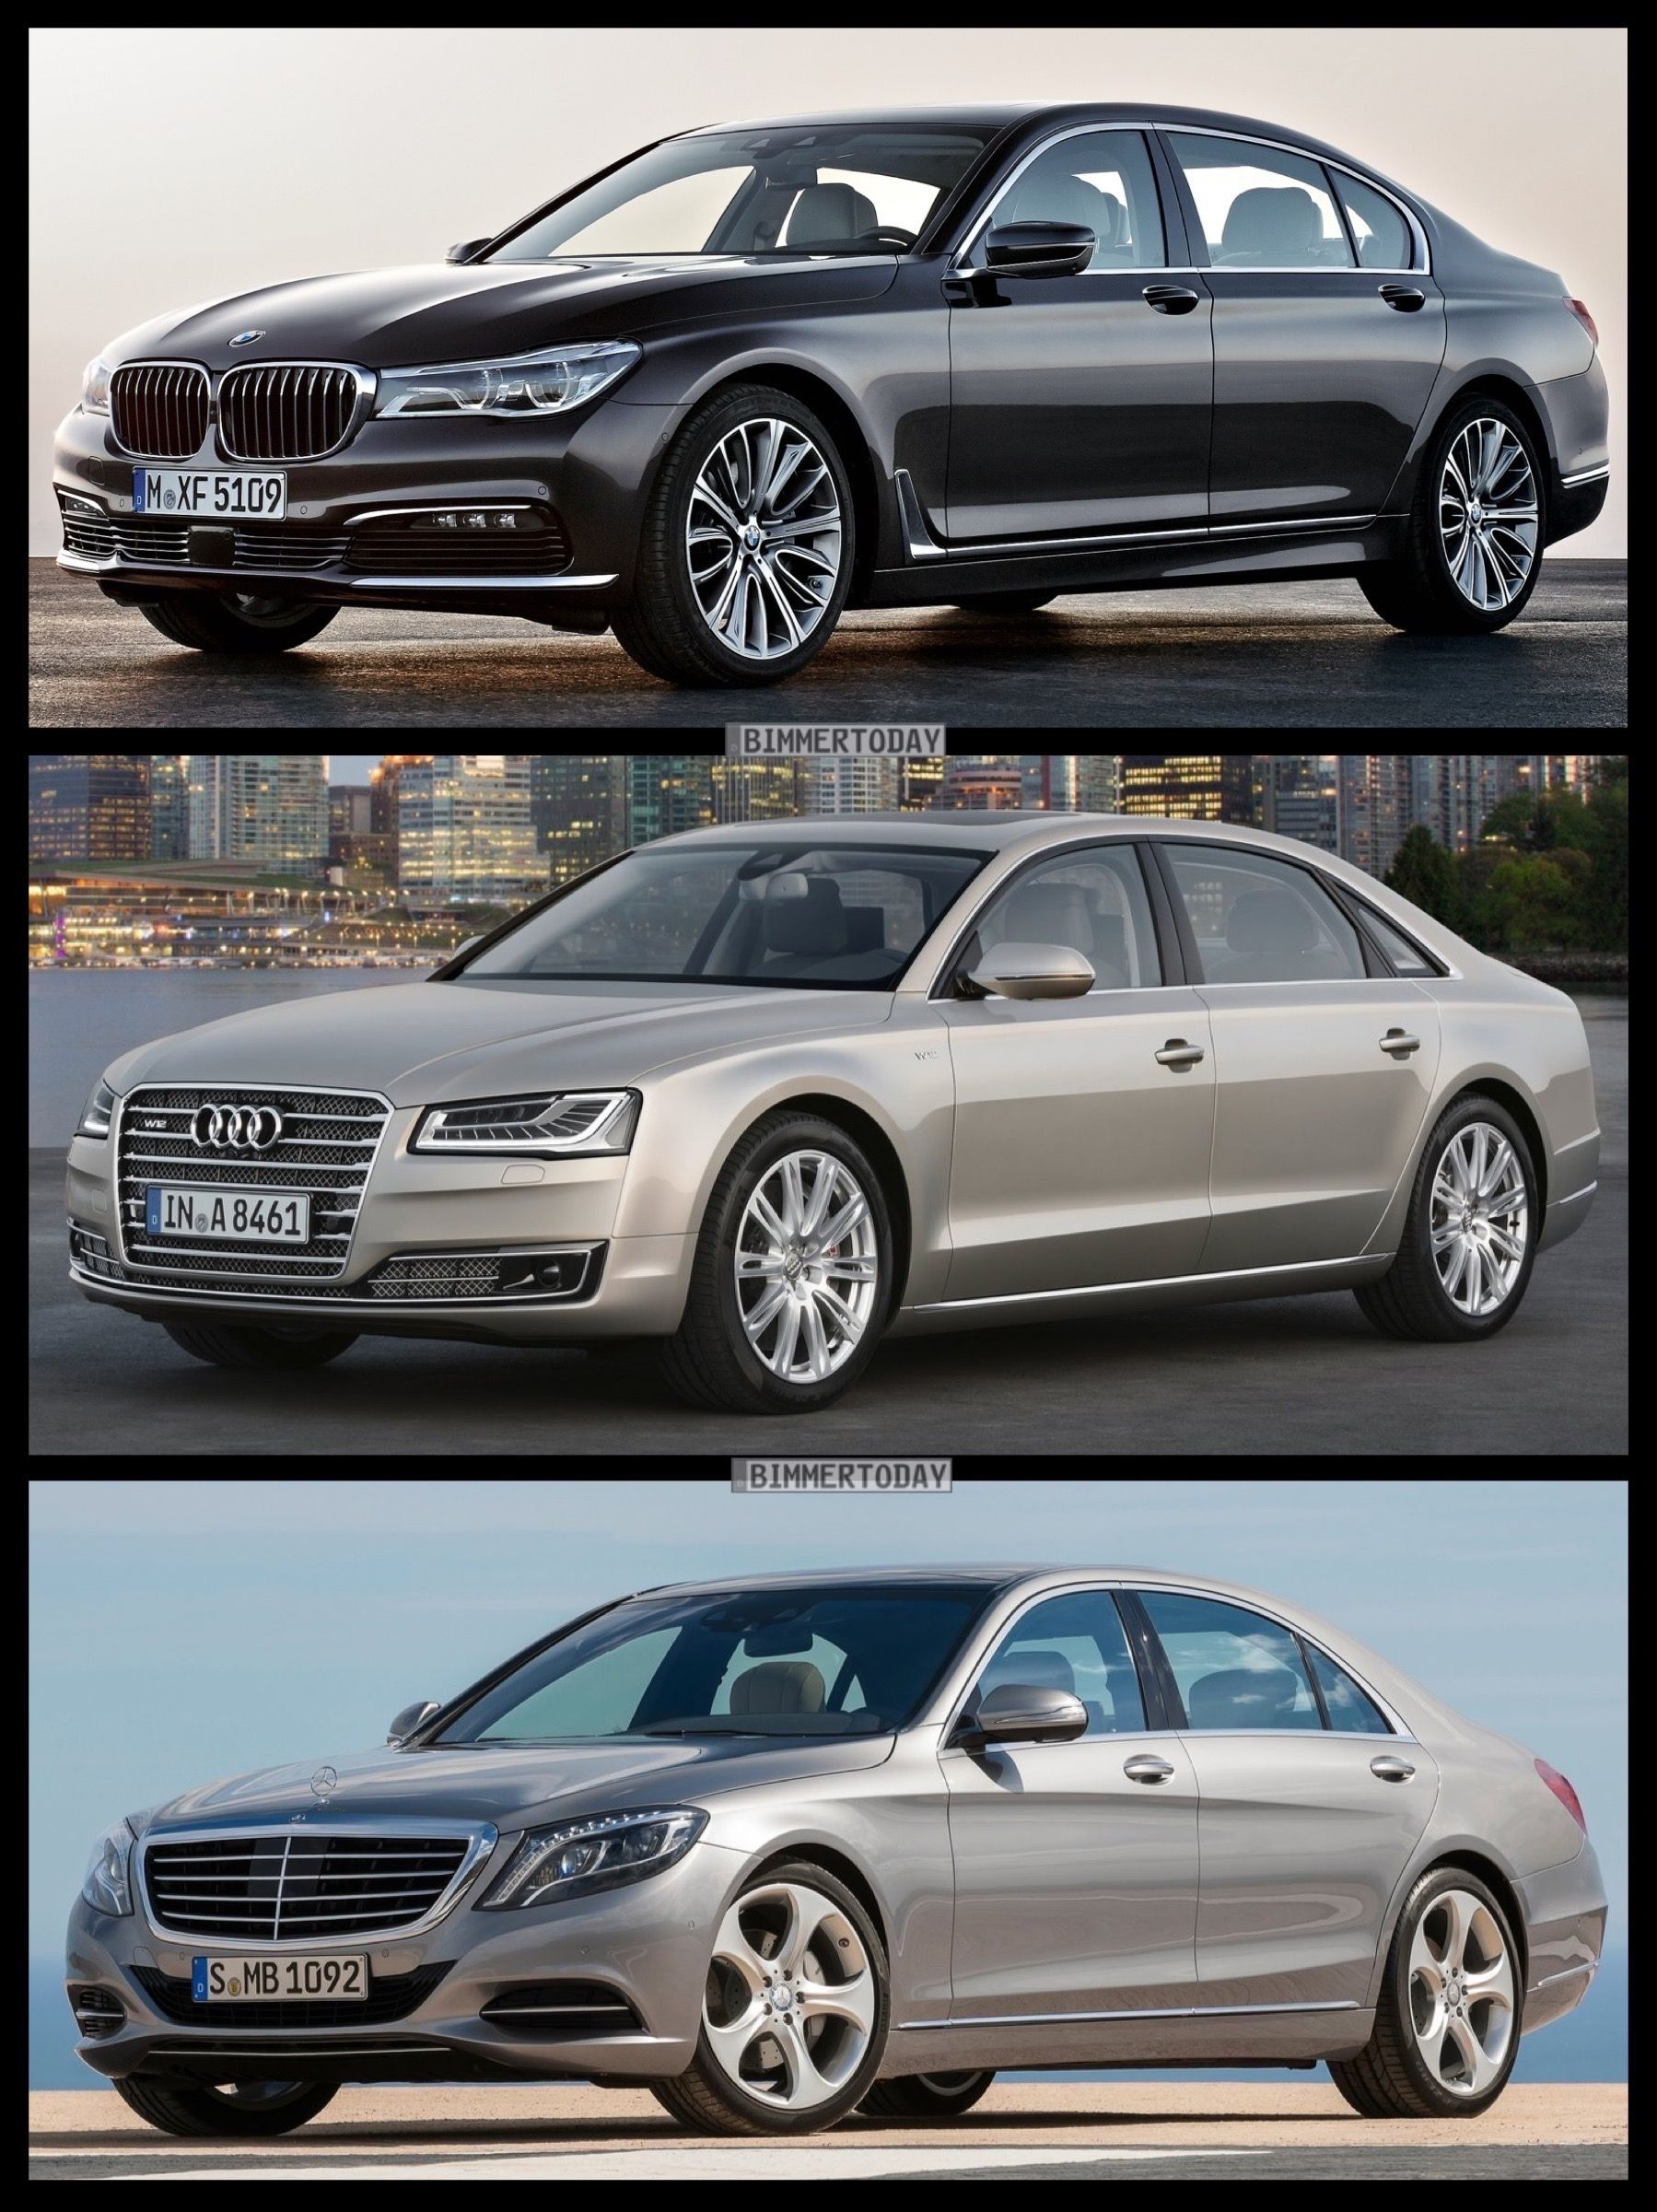 Who S More Reliable Bmw Audi Or Mercedes Benz Audi Reliable Cars Audi Cars